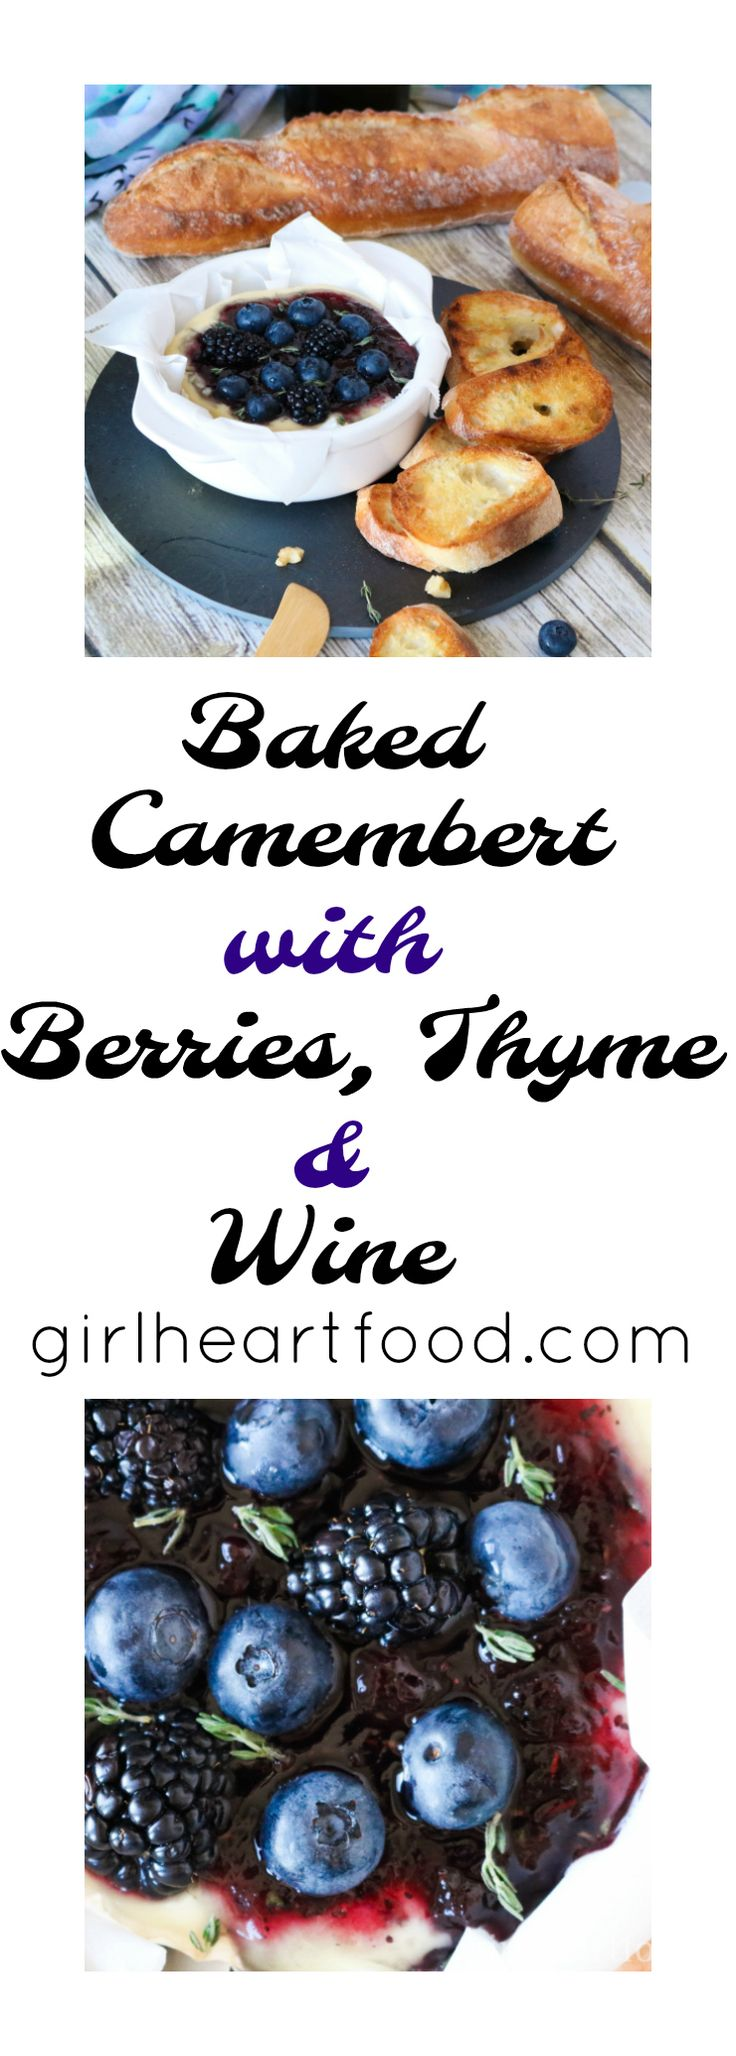 Baked Camembert with Berries, Thyme and Wine This is a sponsored post with Dairy Farmers of Canada, but, as always, all opinions are my own. Thank you for supporting brands that make Girl Heart Food possible and for helping me continue to do what I love – cook, eat and share delicious recipes! #CanadianCheese This …